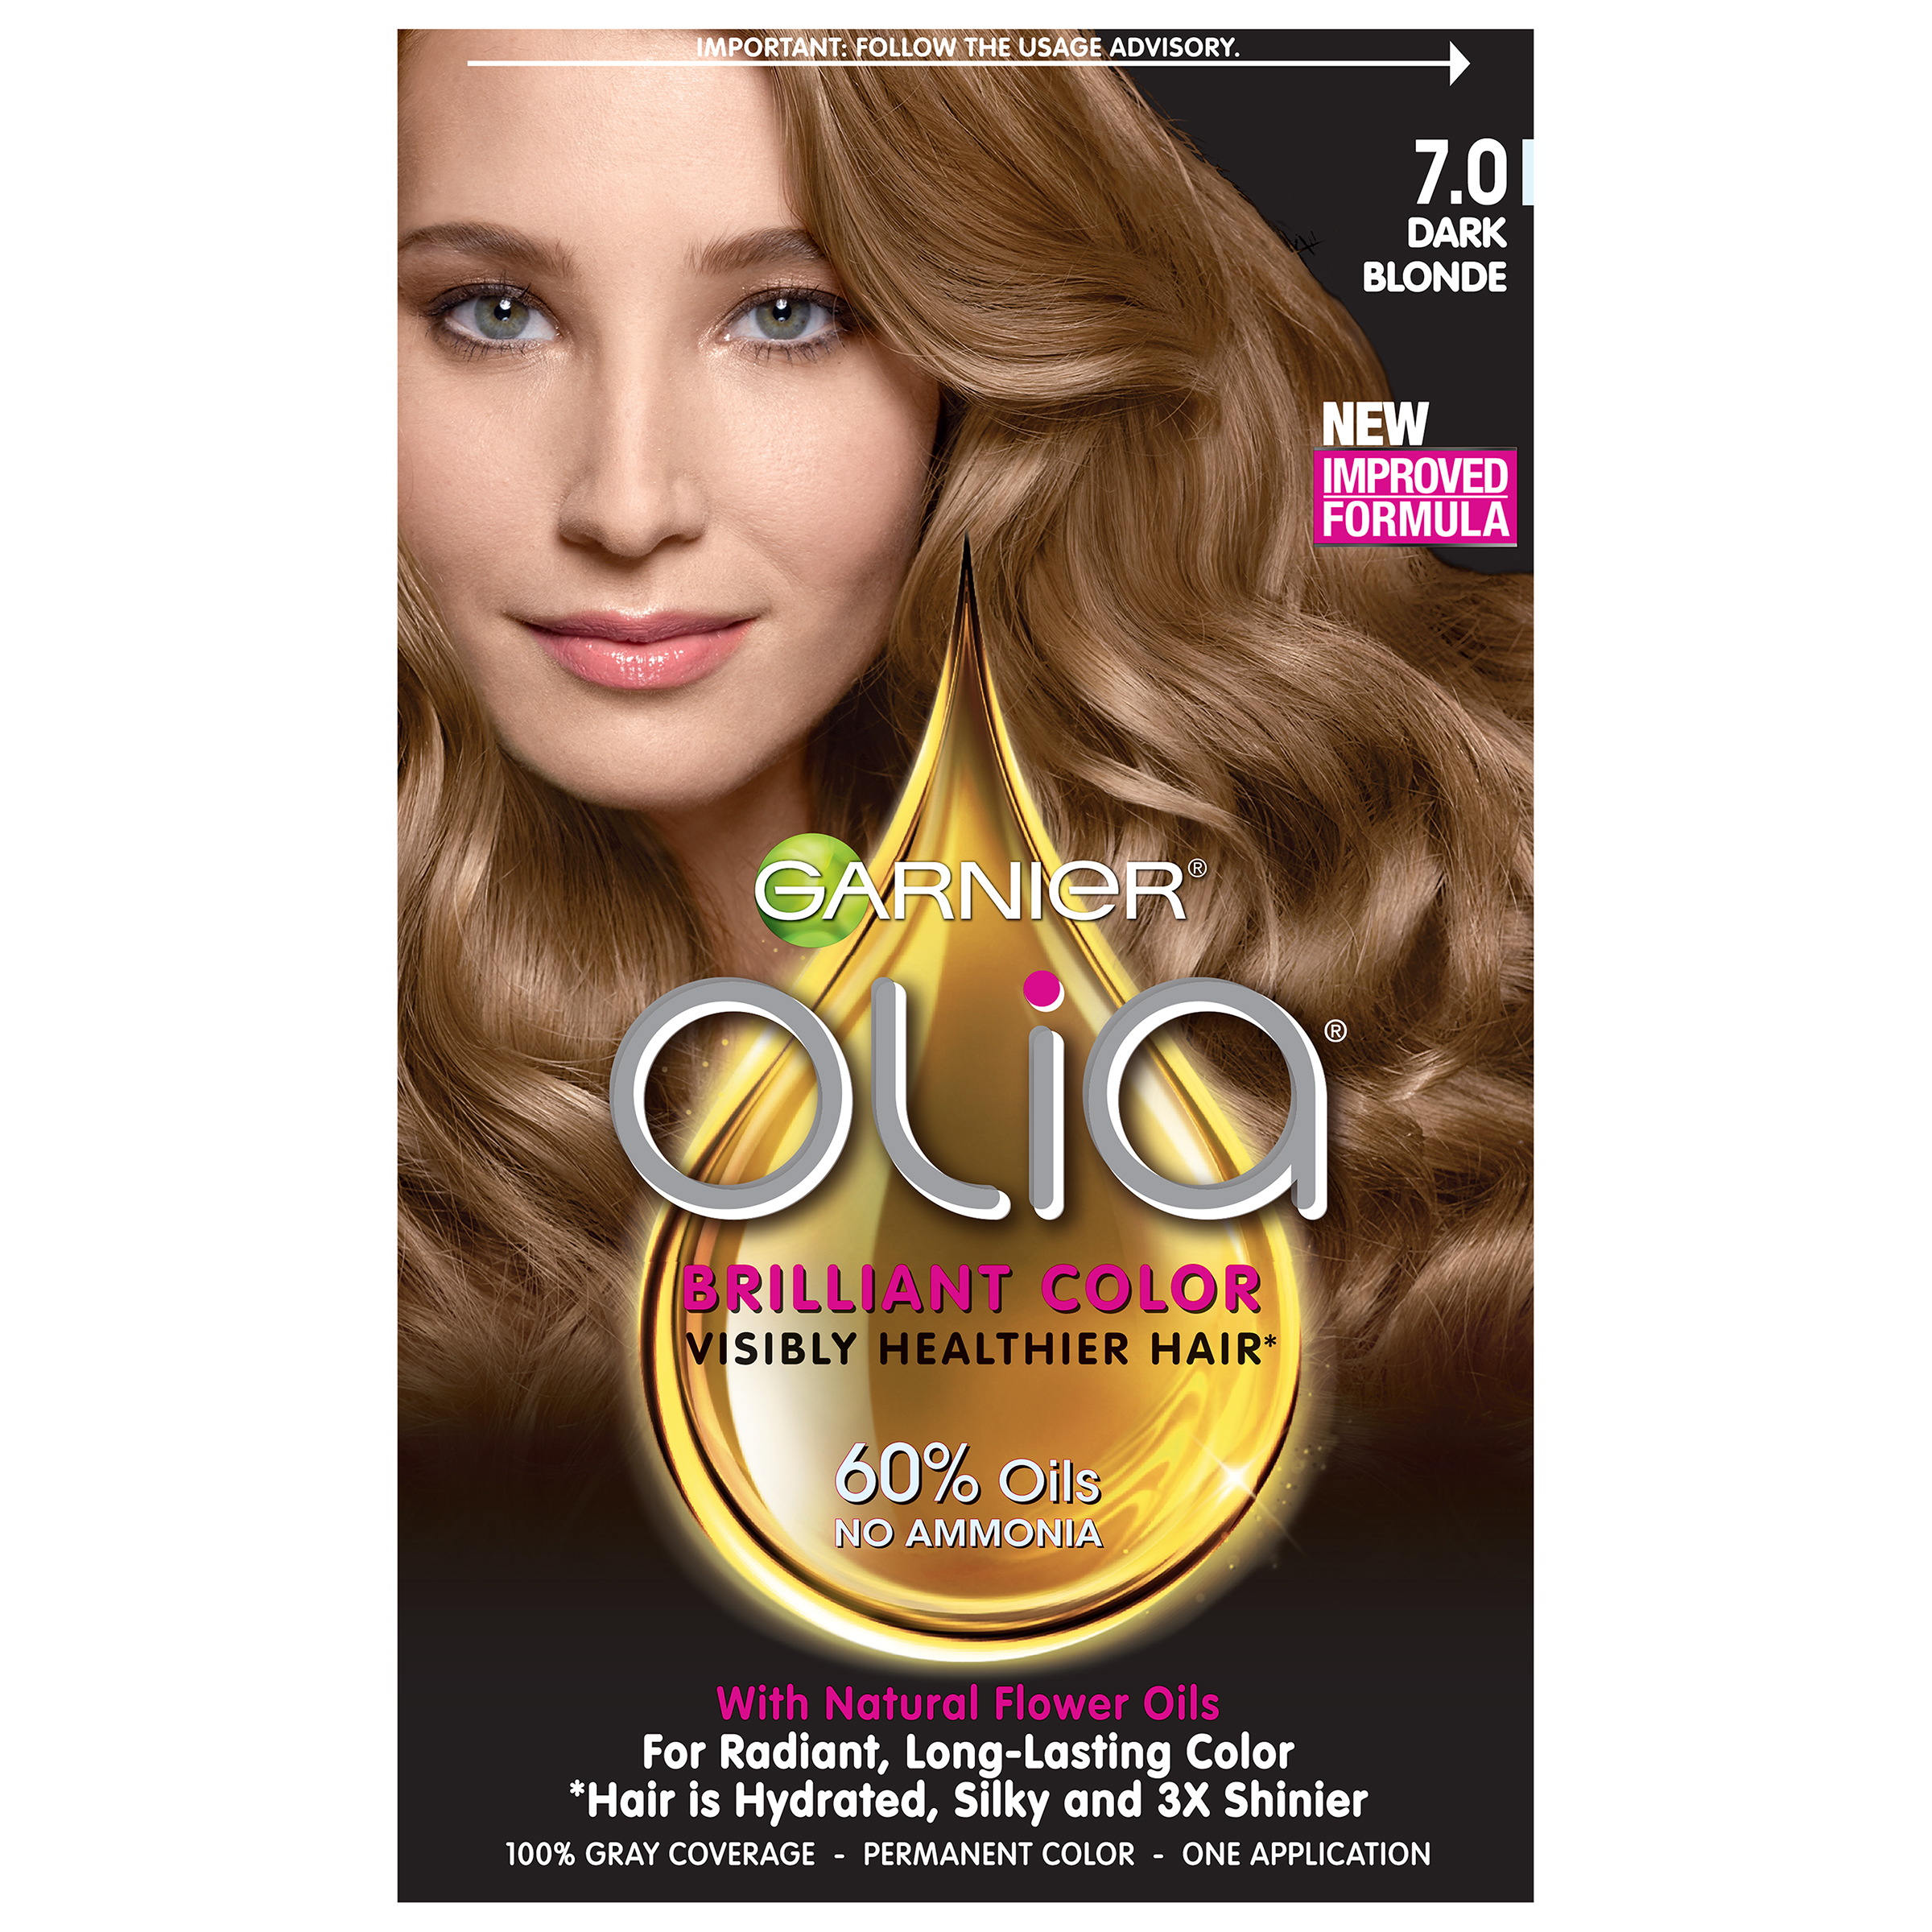 garnier olia oil powered permanent hair color 7 0 dark